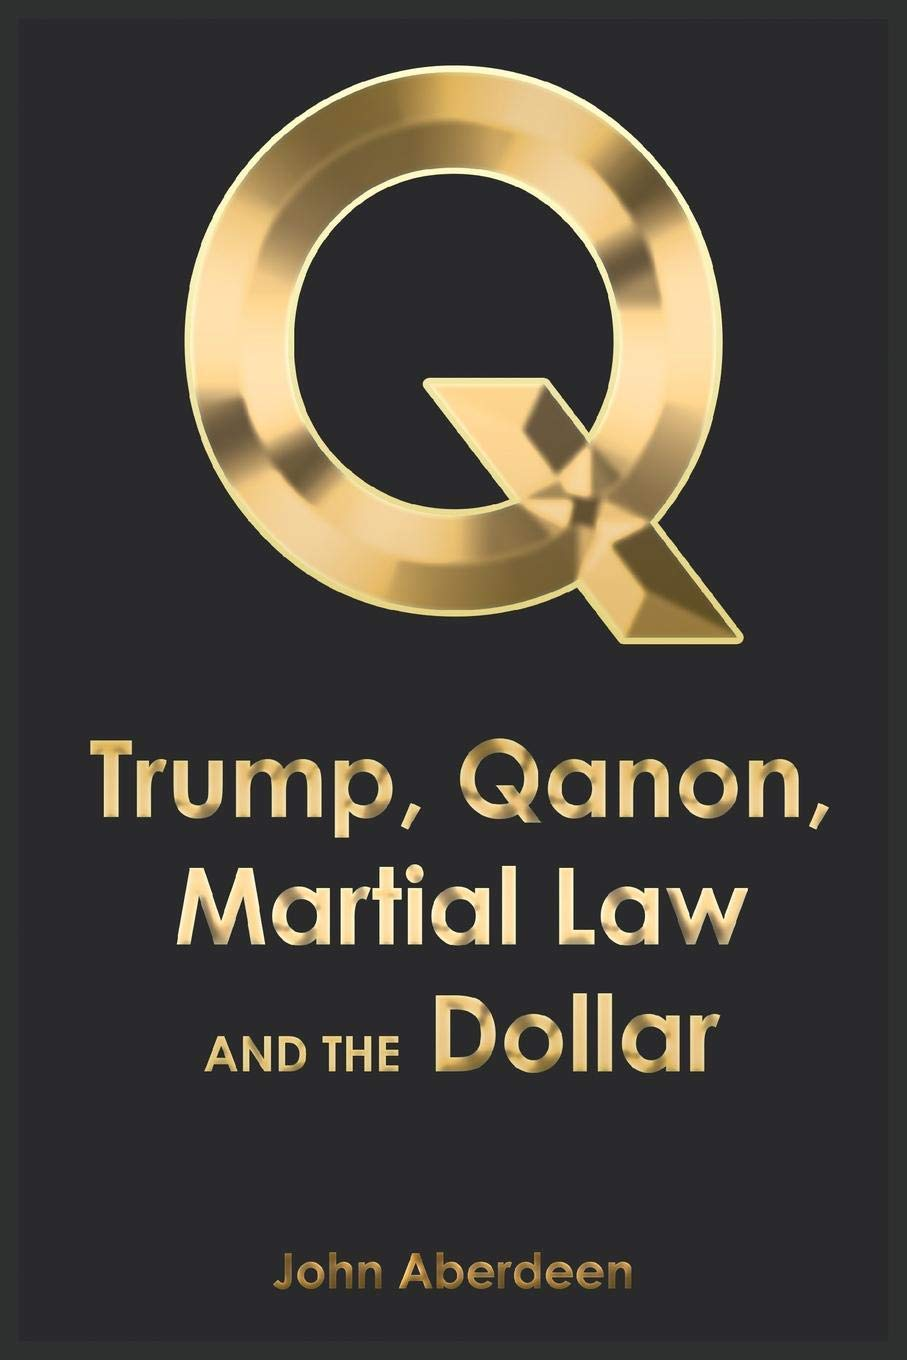 Trump, Qanon, Martial Law, And The Dollar